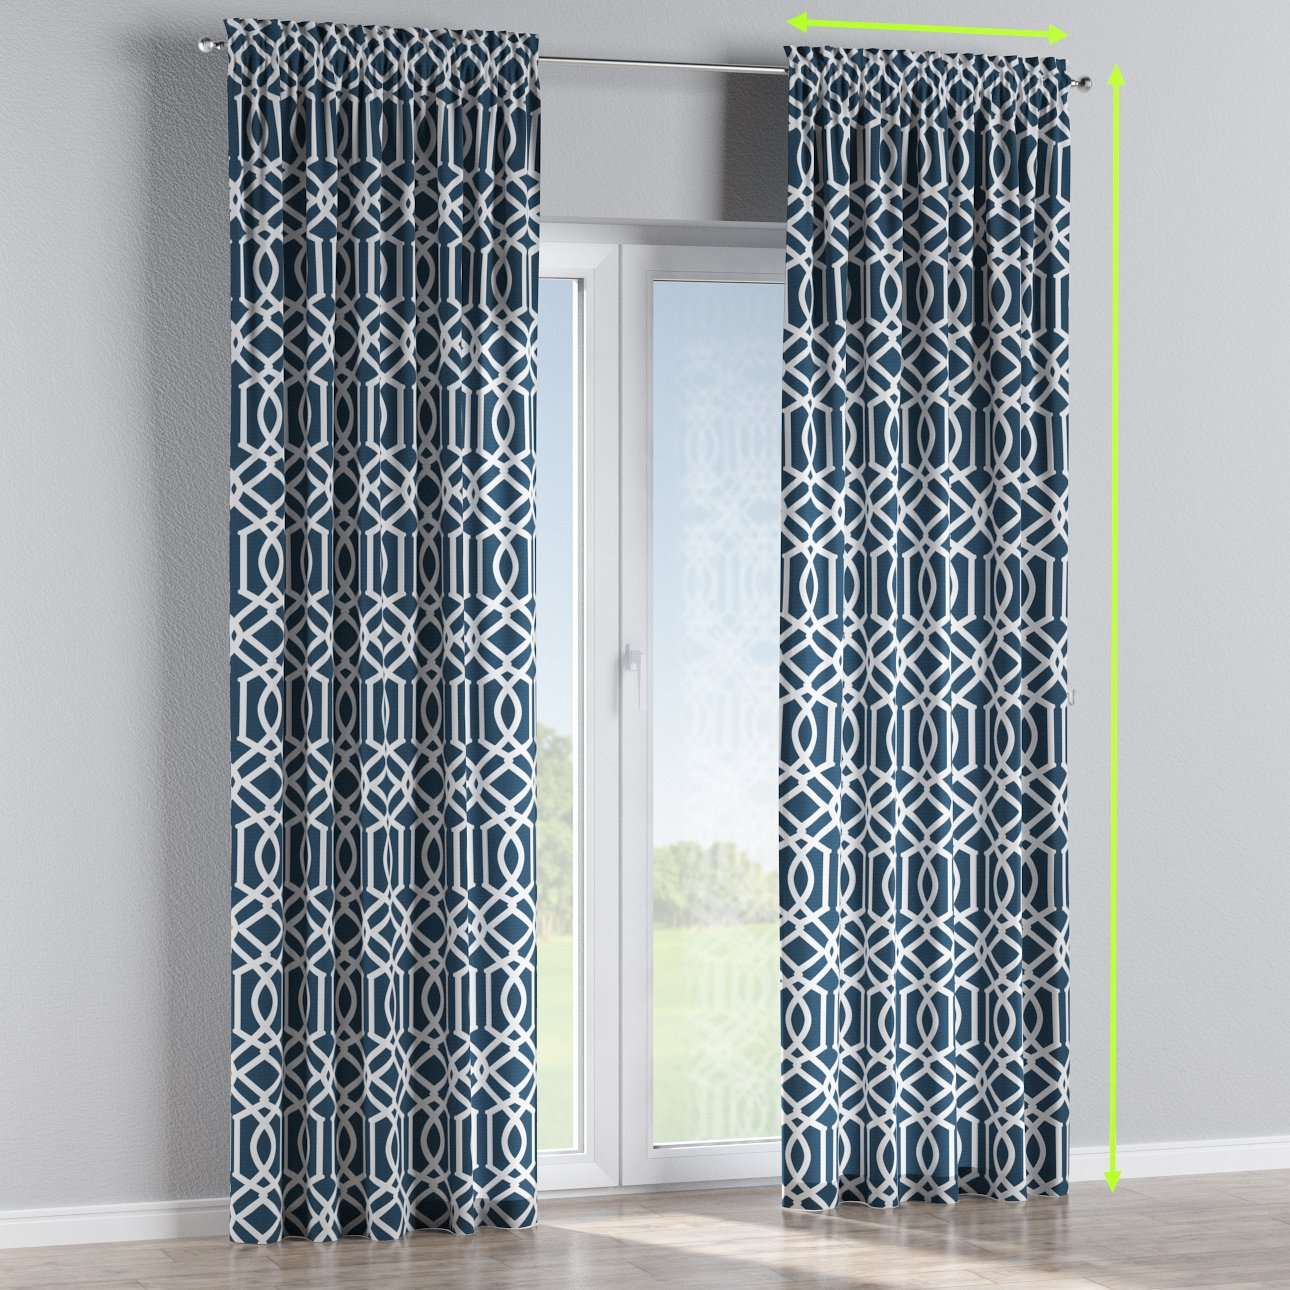 Slot and frill lined curtains in collection Comic Book & Geo Prints, fabric: 135-10